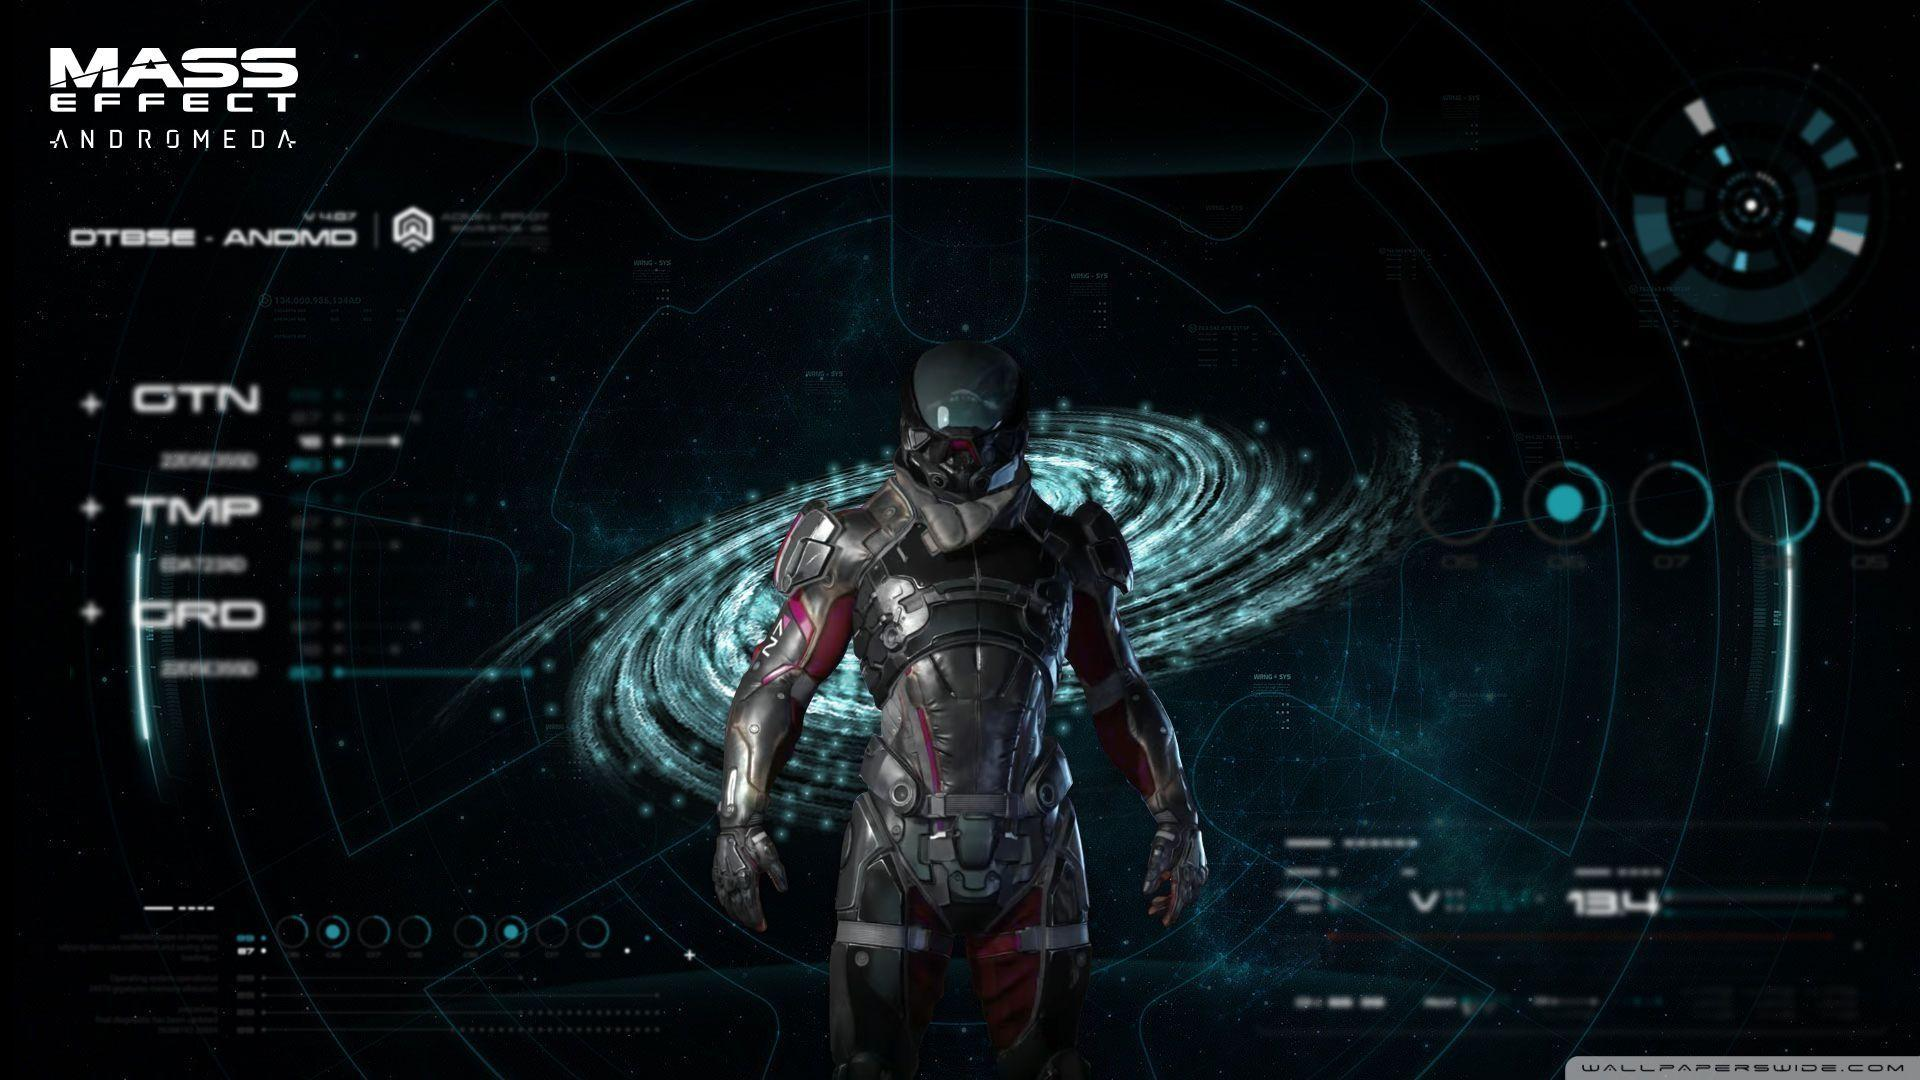 Mass Effect Andromeda Full Hd 3d Wallpapers: Mass Effect: Andromeda Wallpapers